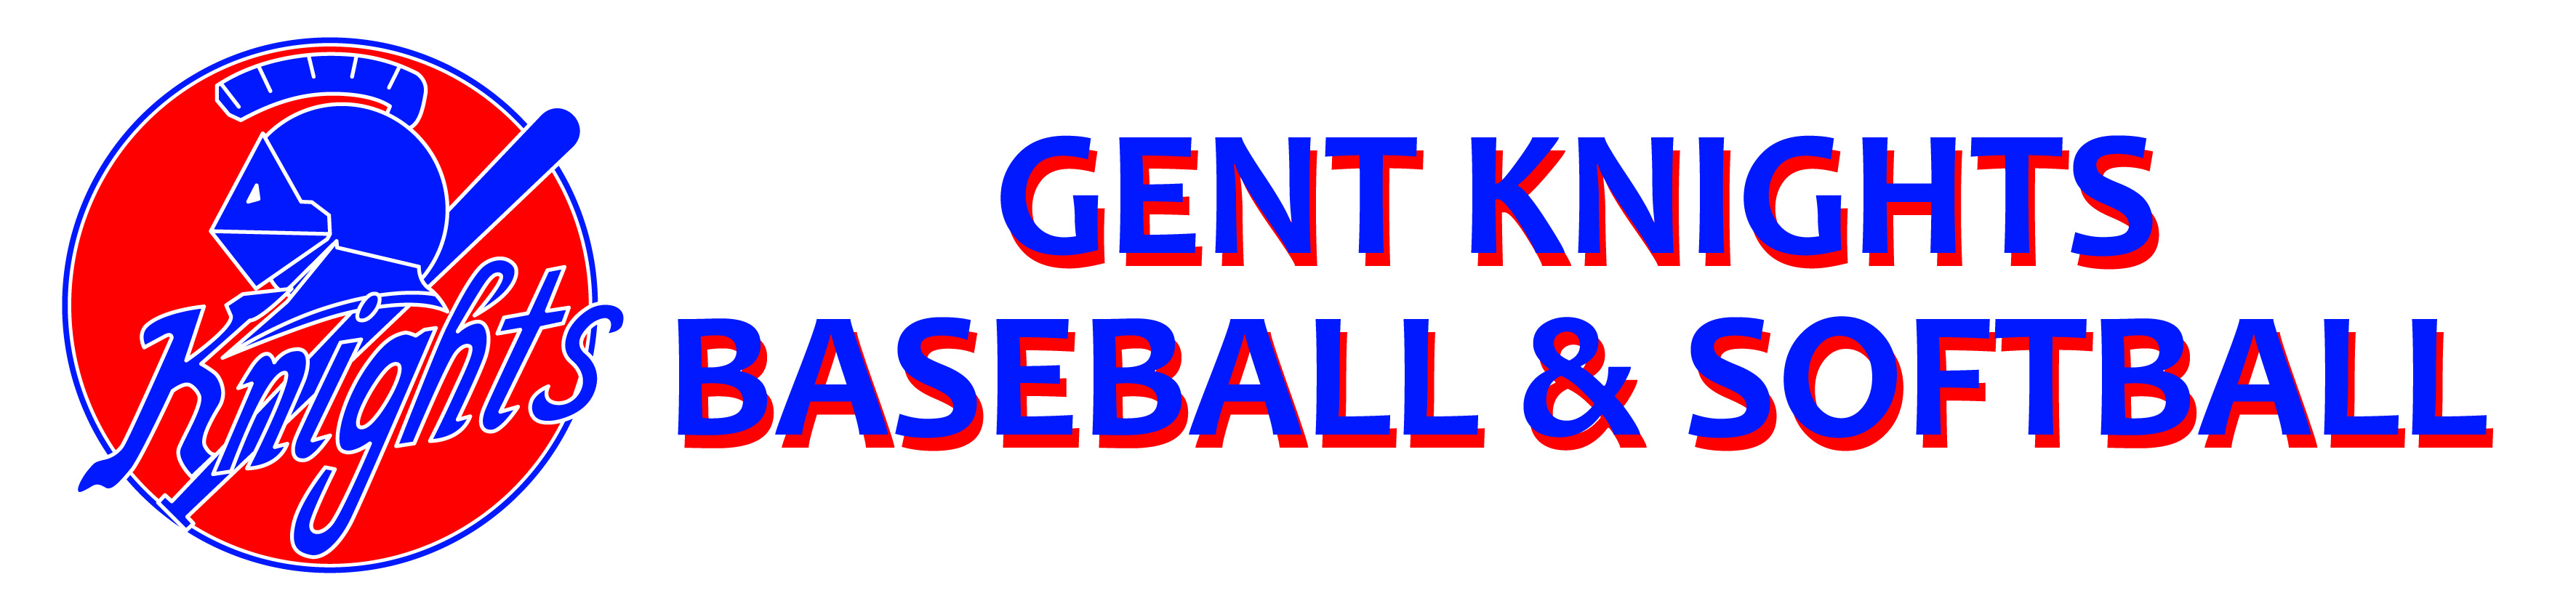 Gent Knights - Baseball en Softball